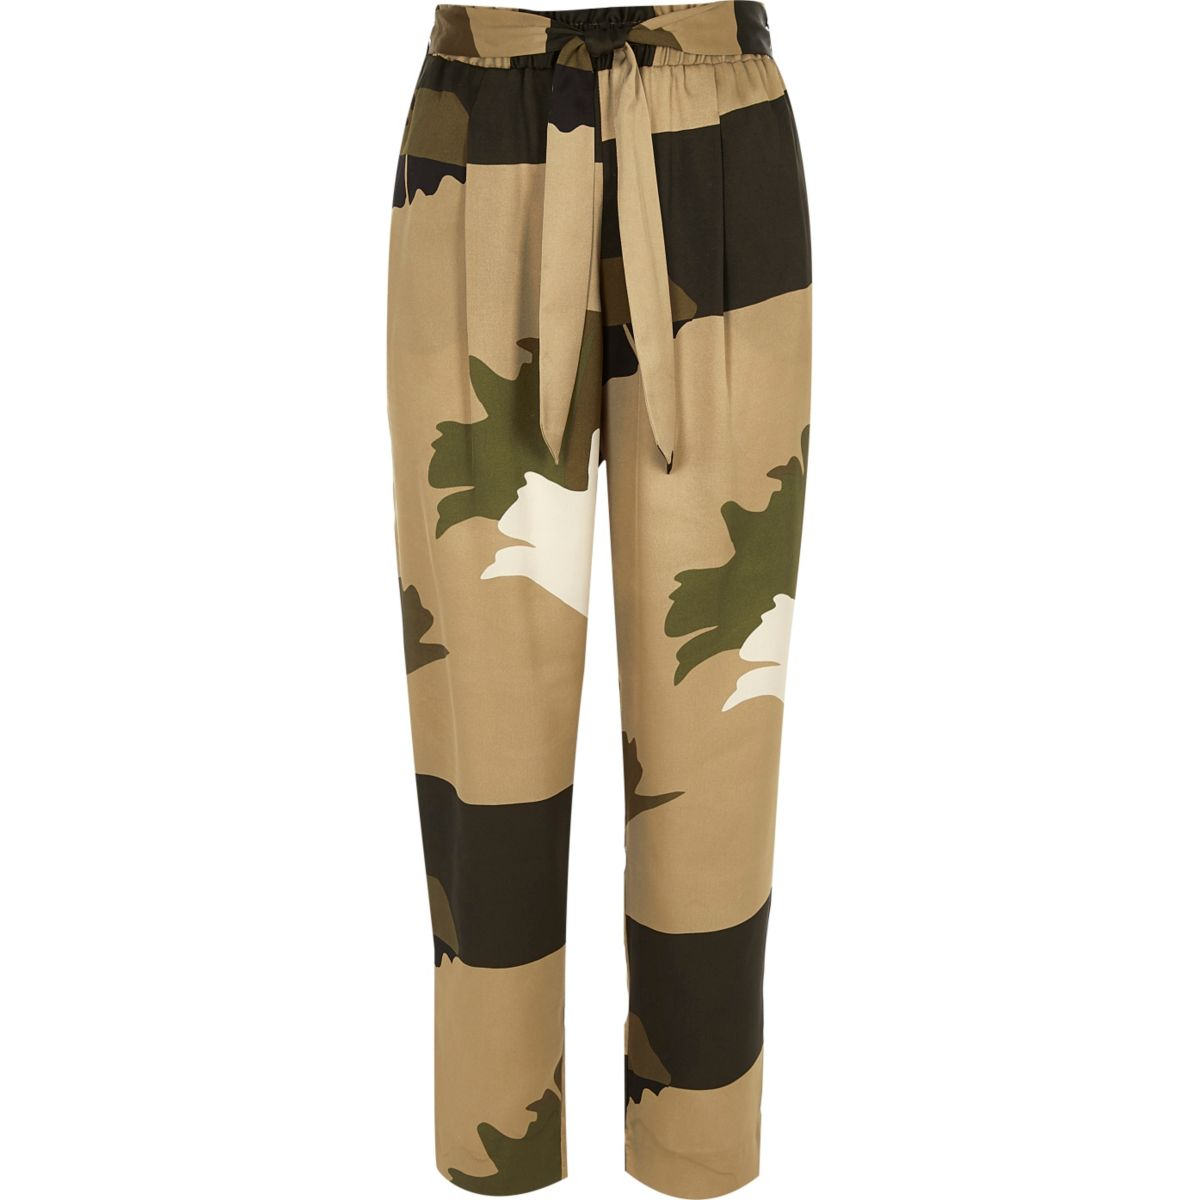 Khaki brown soft tie tapered pants